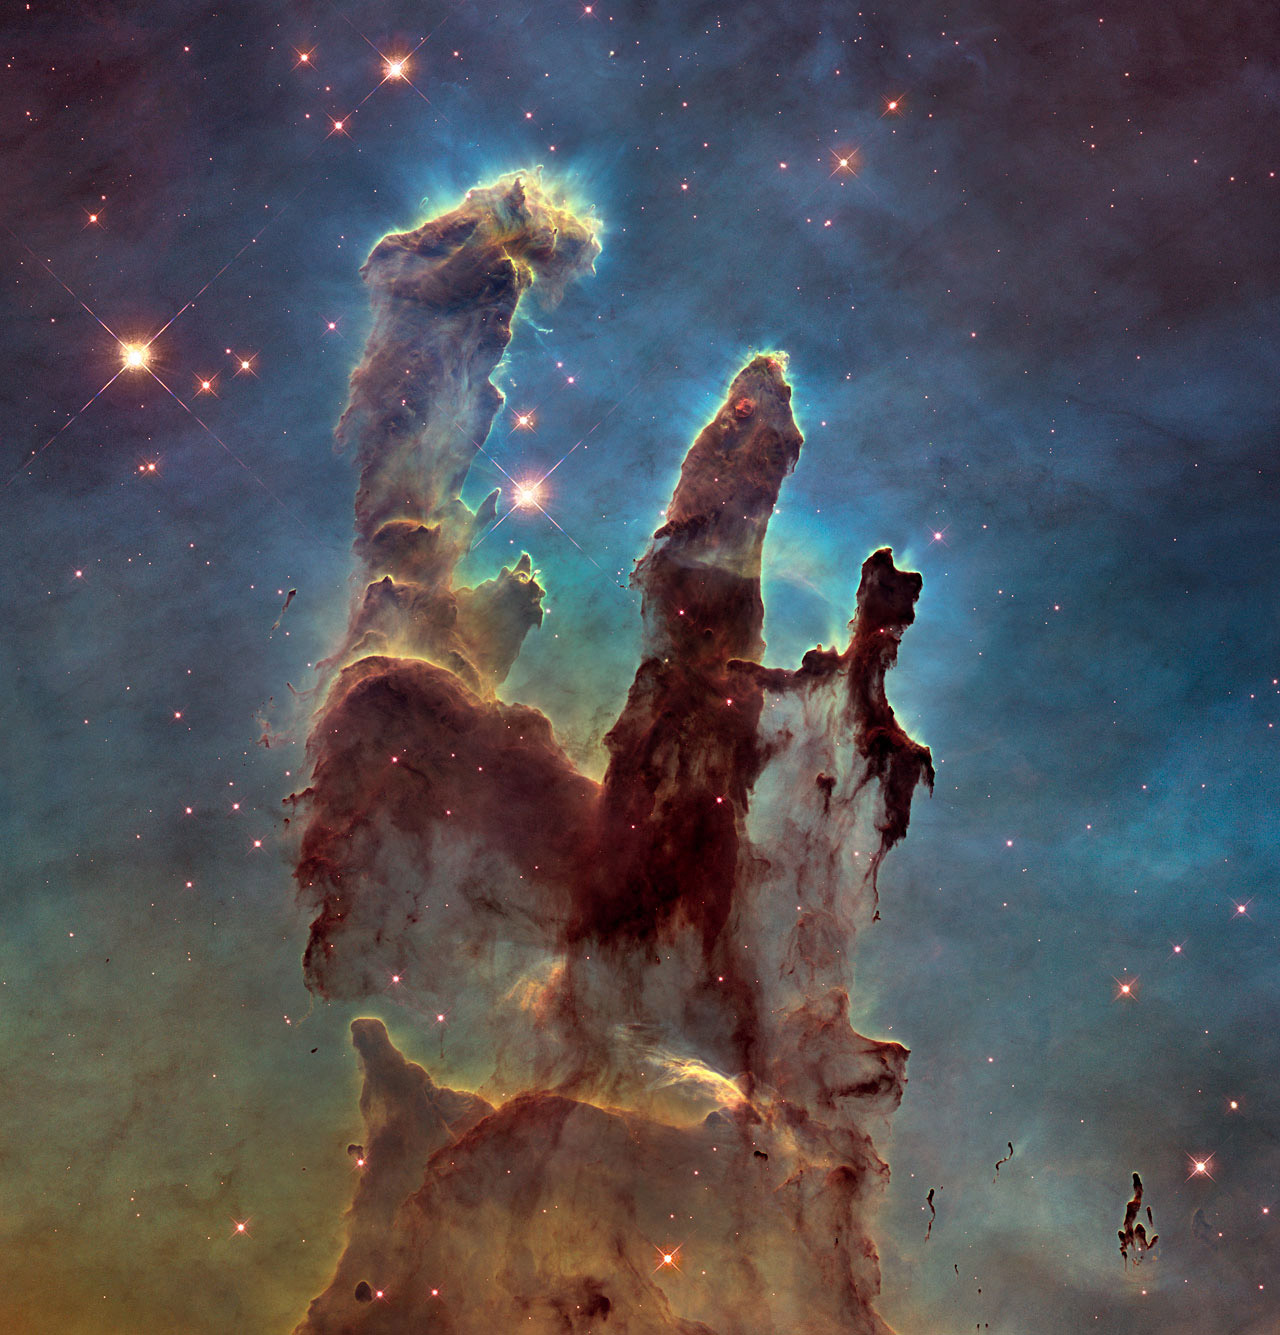 Pillars of Creation 2.0